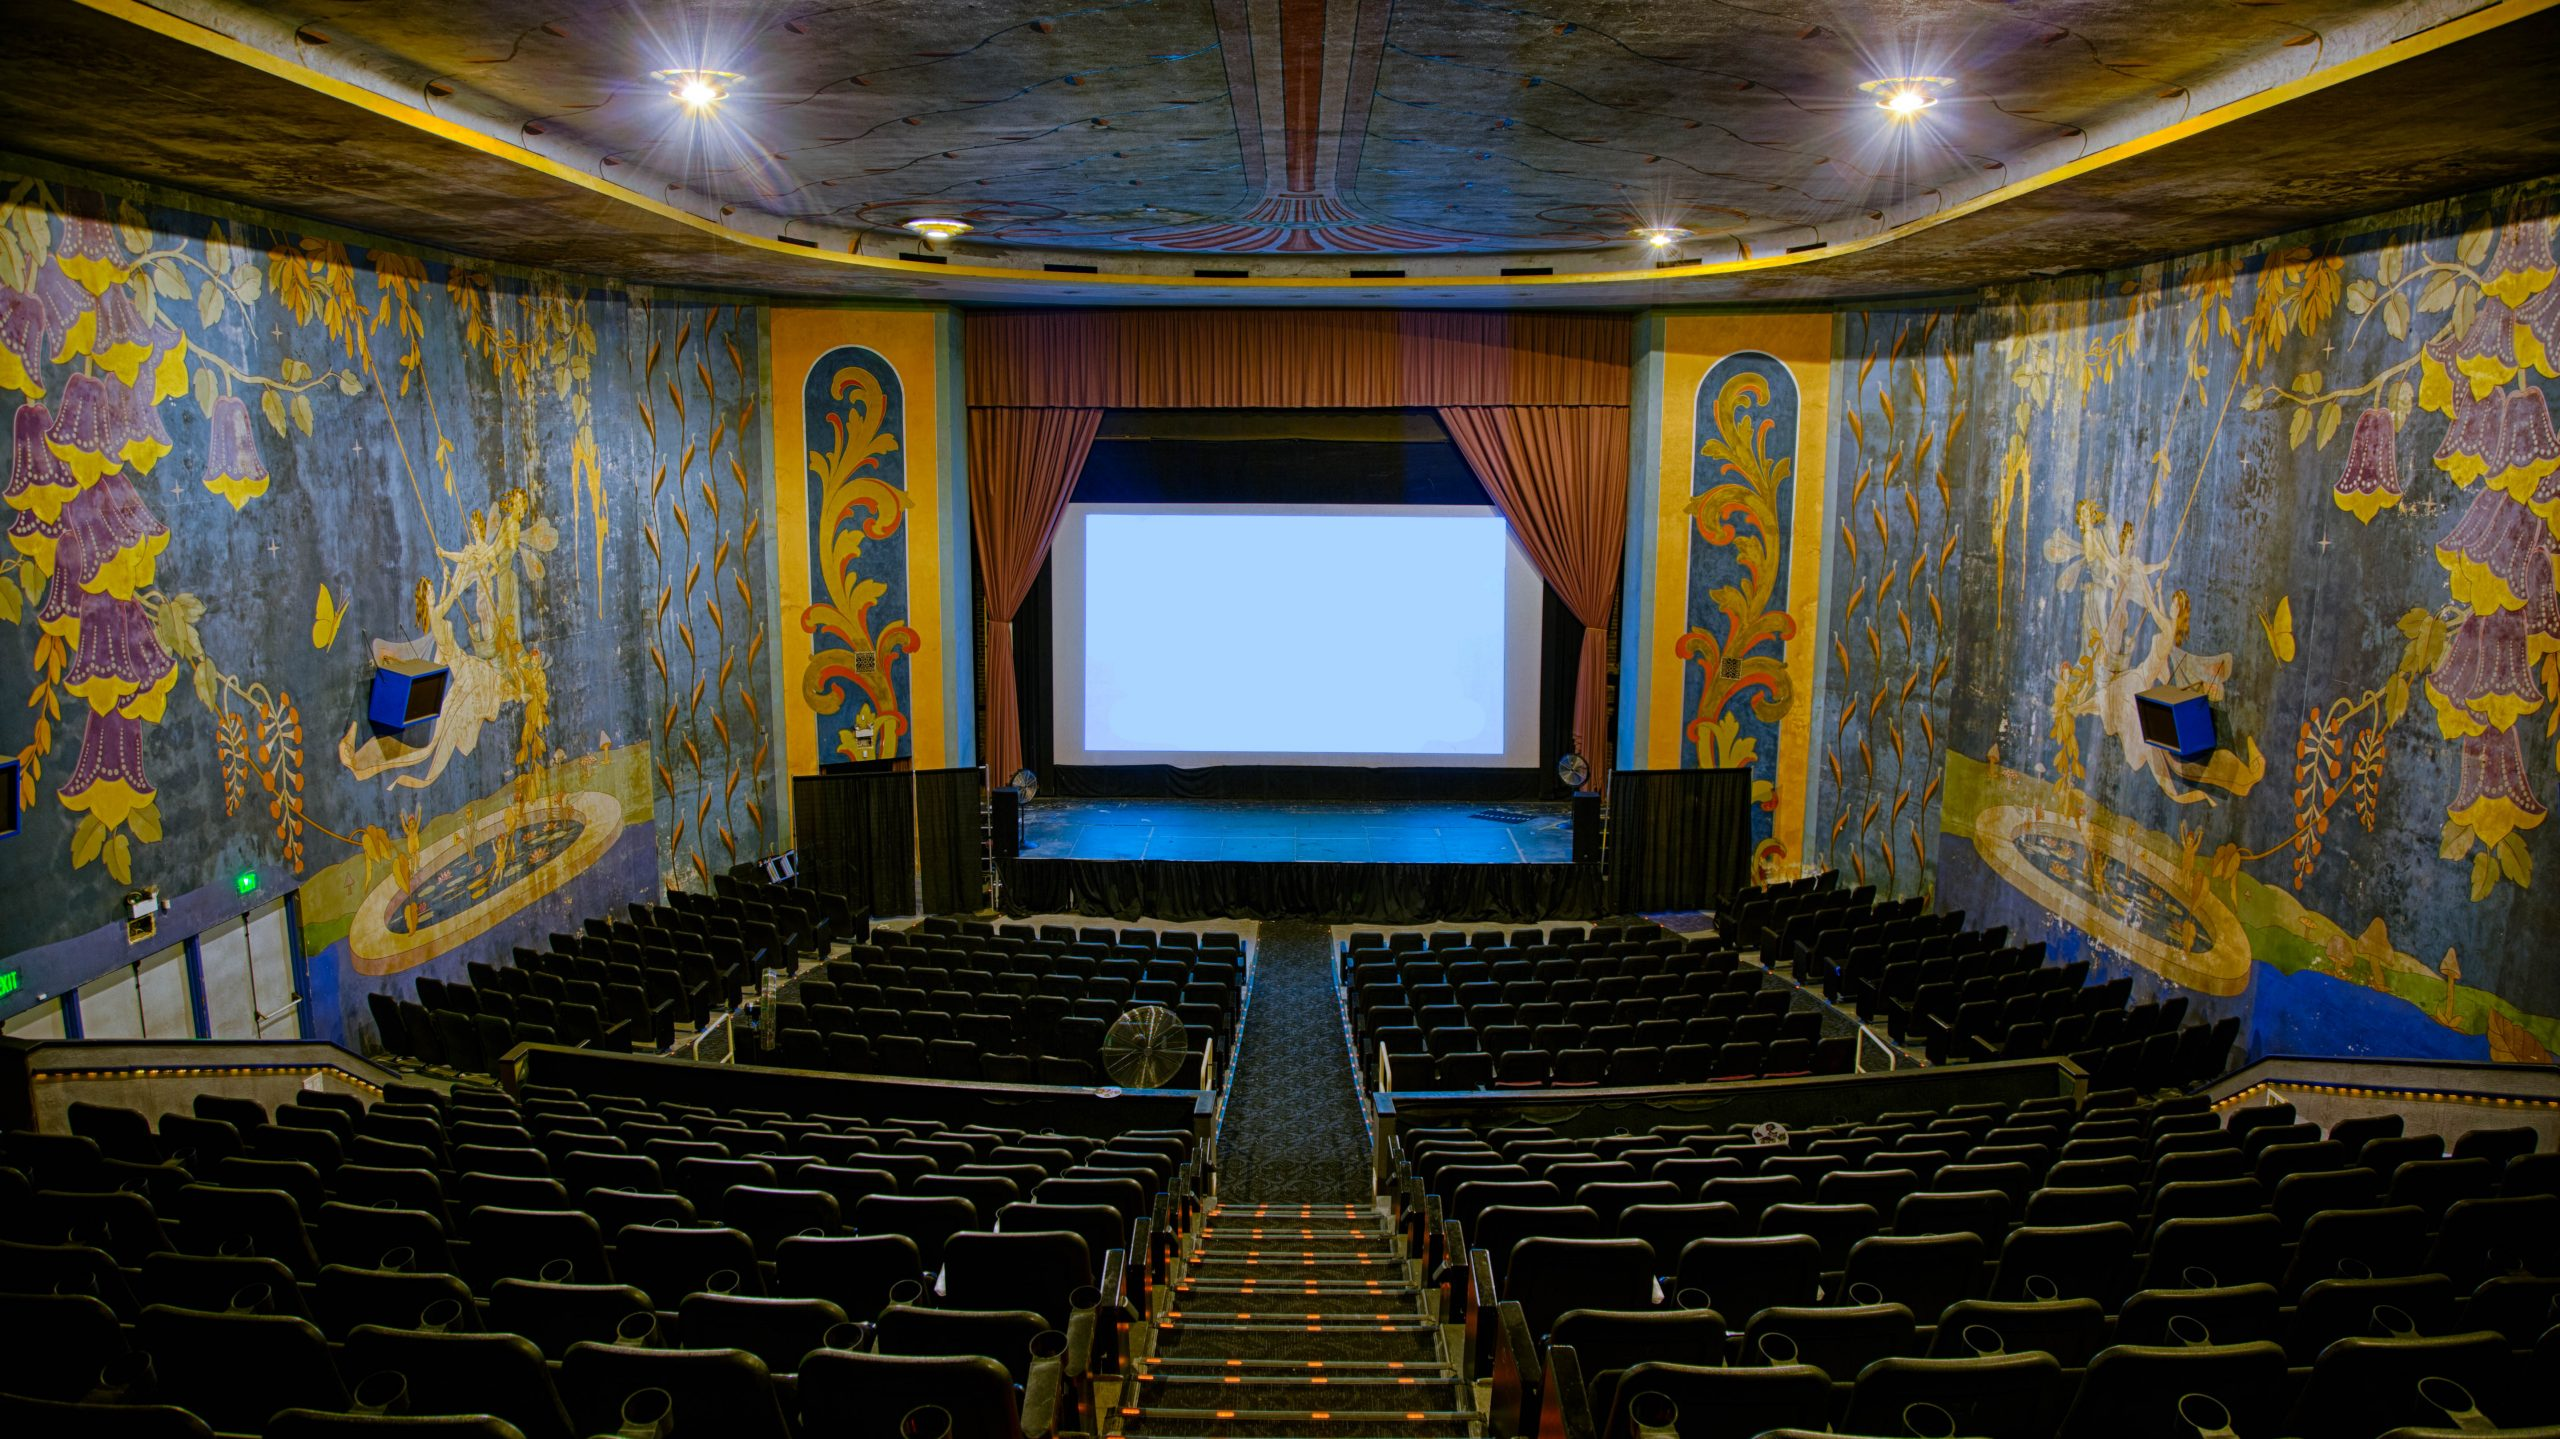 Header Image - Working to keep California's oldest movie theater alive